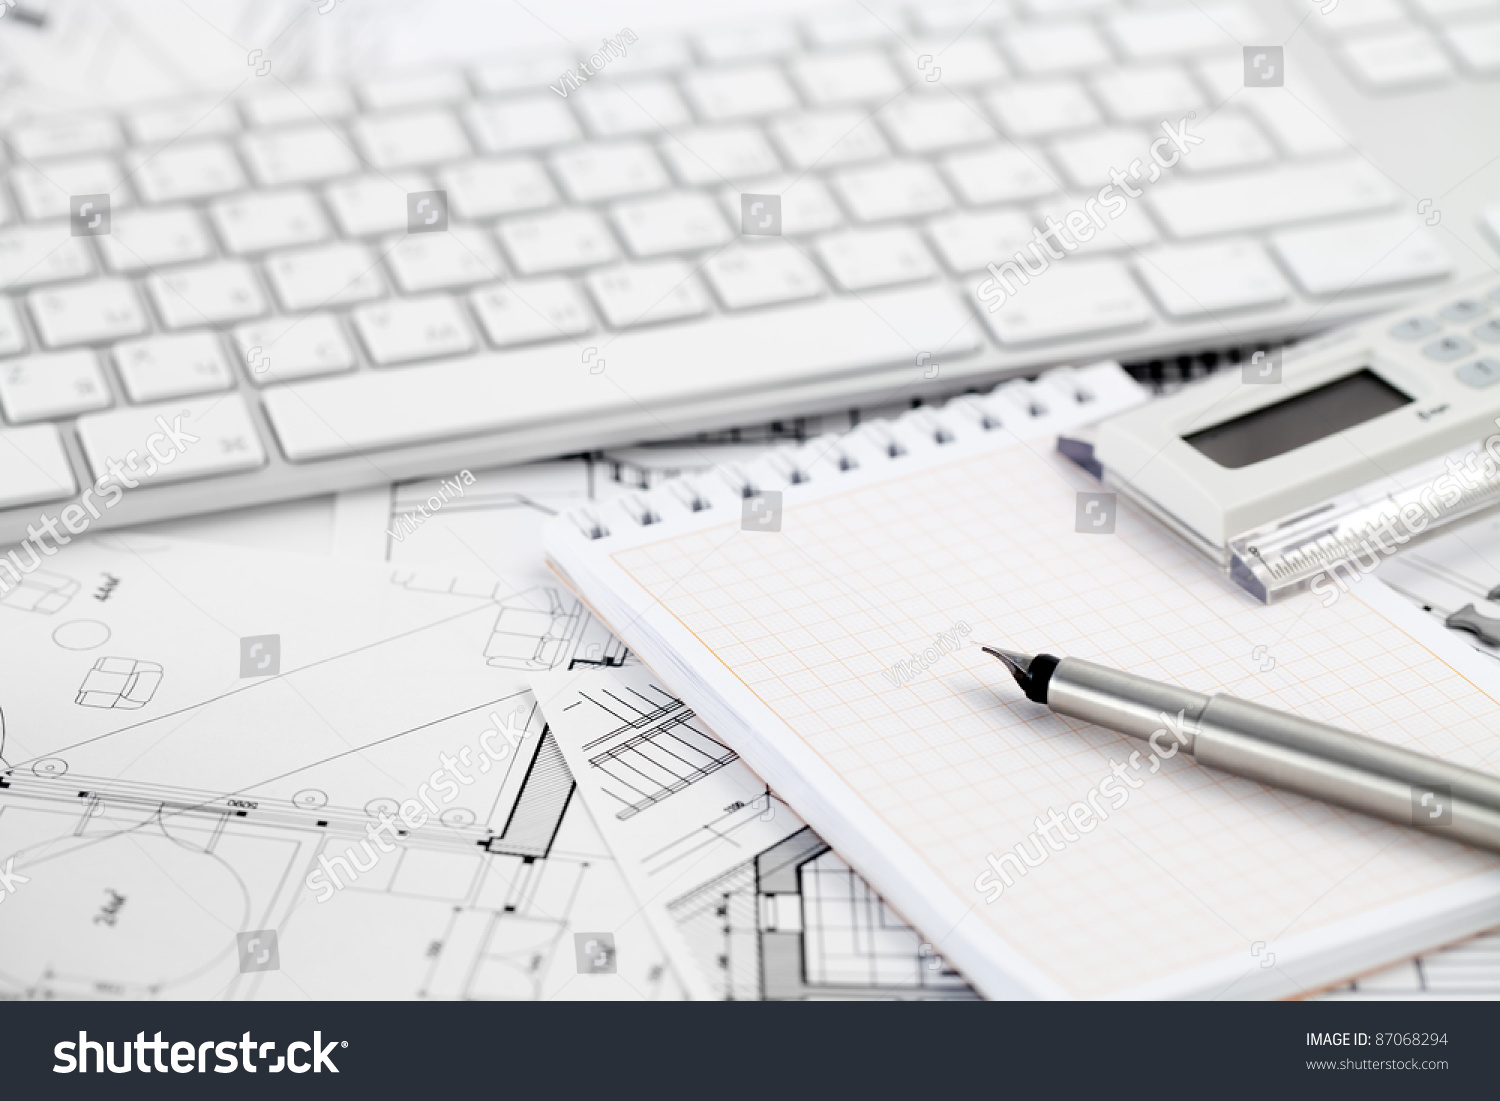 computer keyboard calculator notepad ink pen stock photo 87068294 computer keyboard calculator notepad ink pen and architectural drawings of the modern house